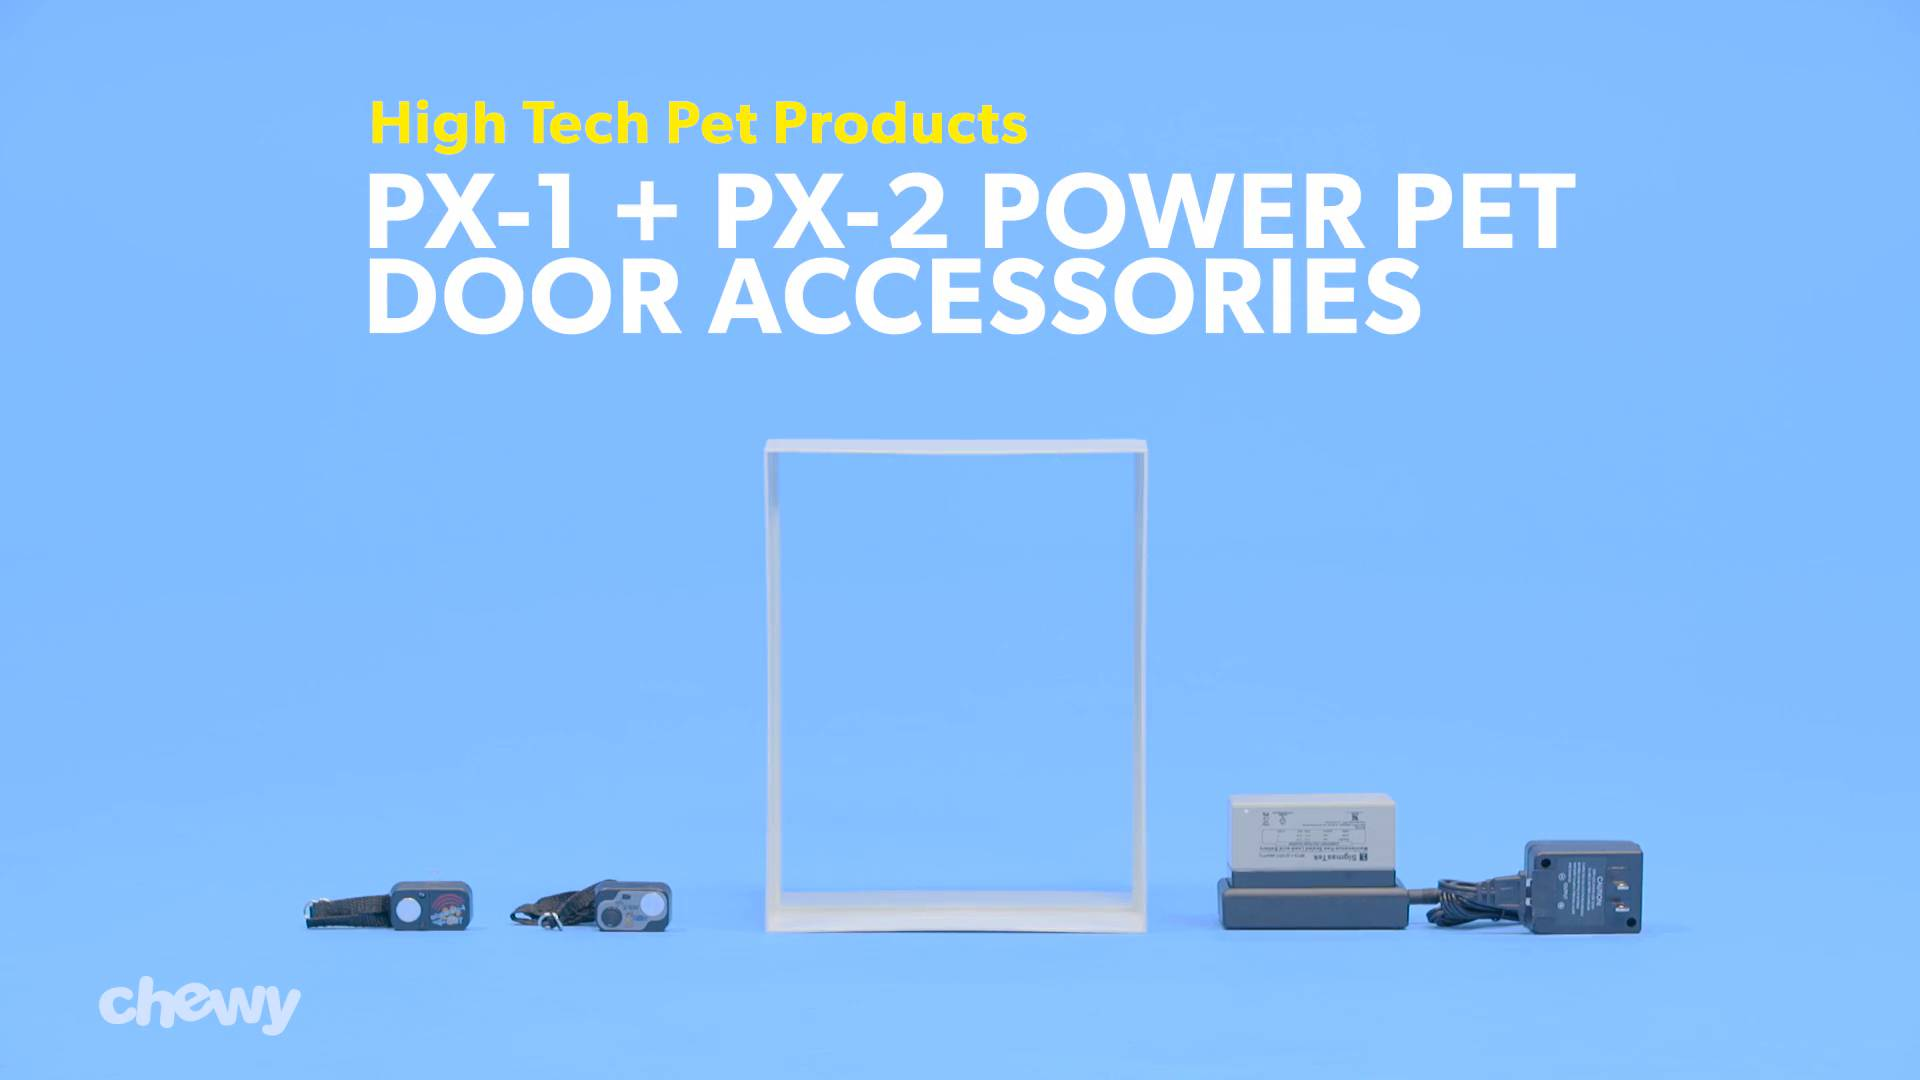 High Tech Pet Products Wa 2 Large Wall Adapter For Px 2 Power Pet